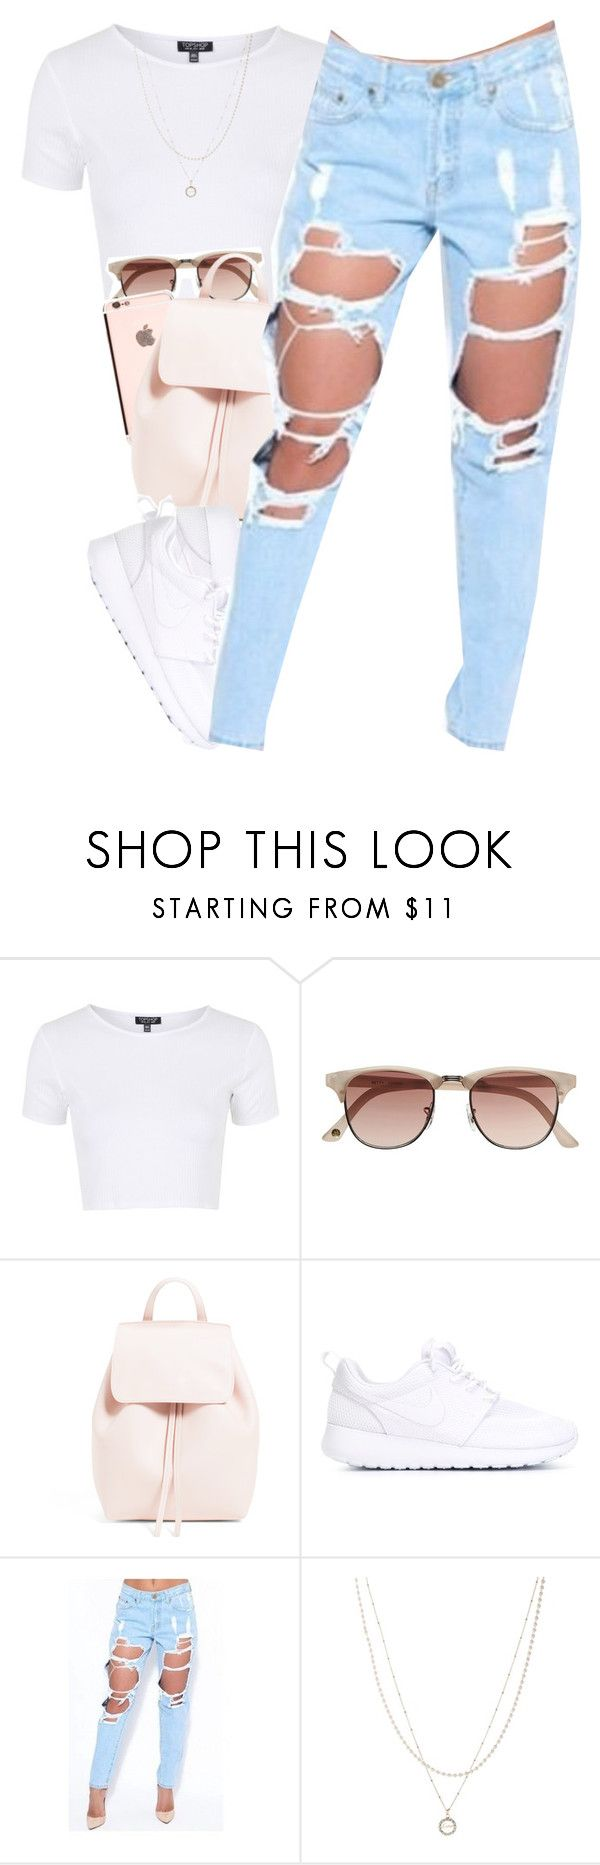 """""""these jeans """" by daisym0nste ❤ liked on Polyvore featuring Topshop, Witchery, NIKE and ASOS"""